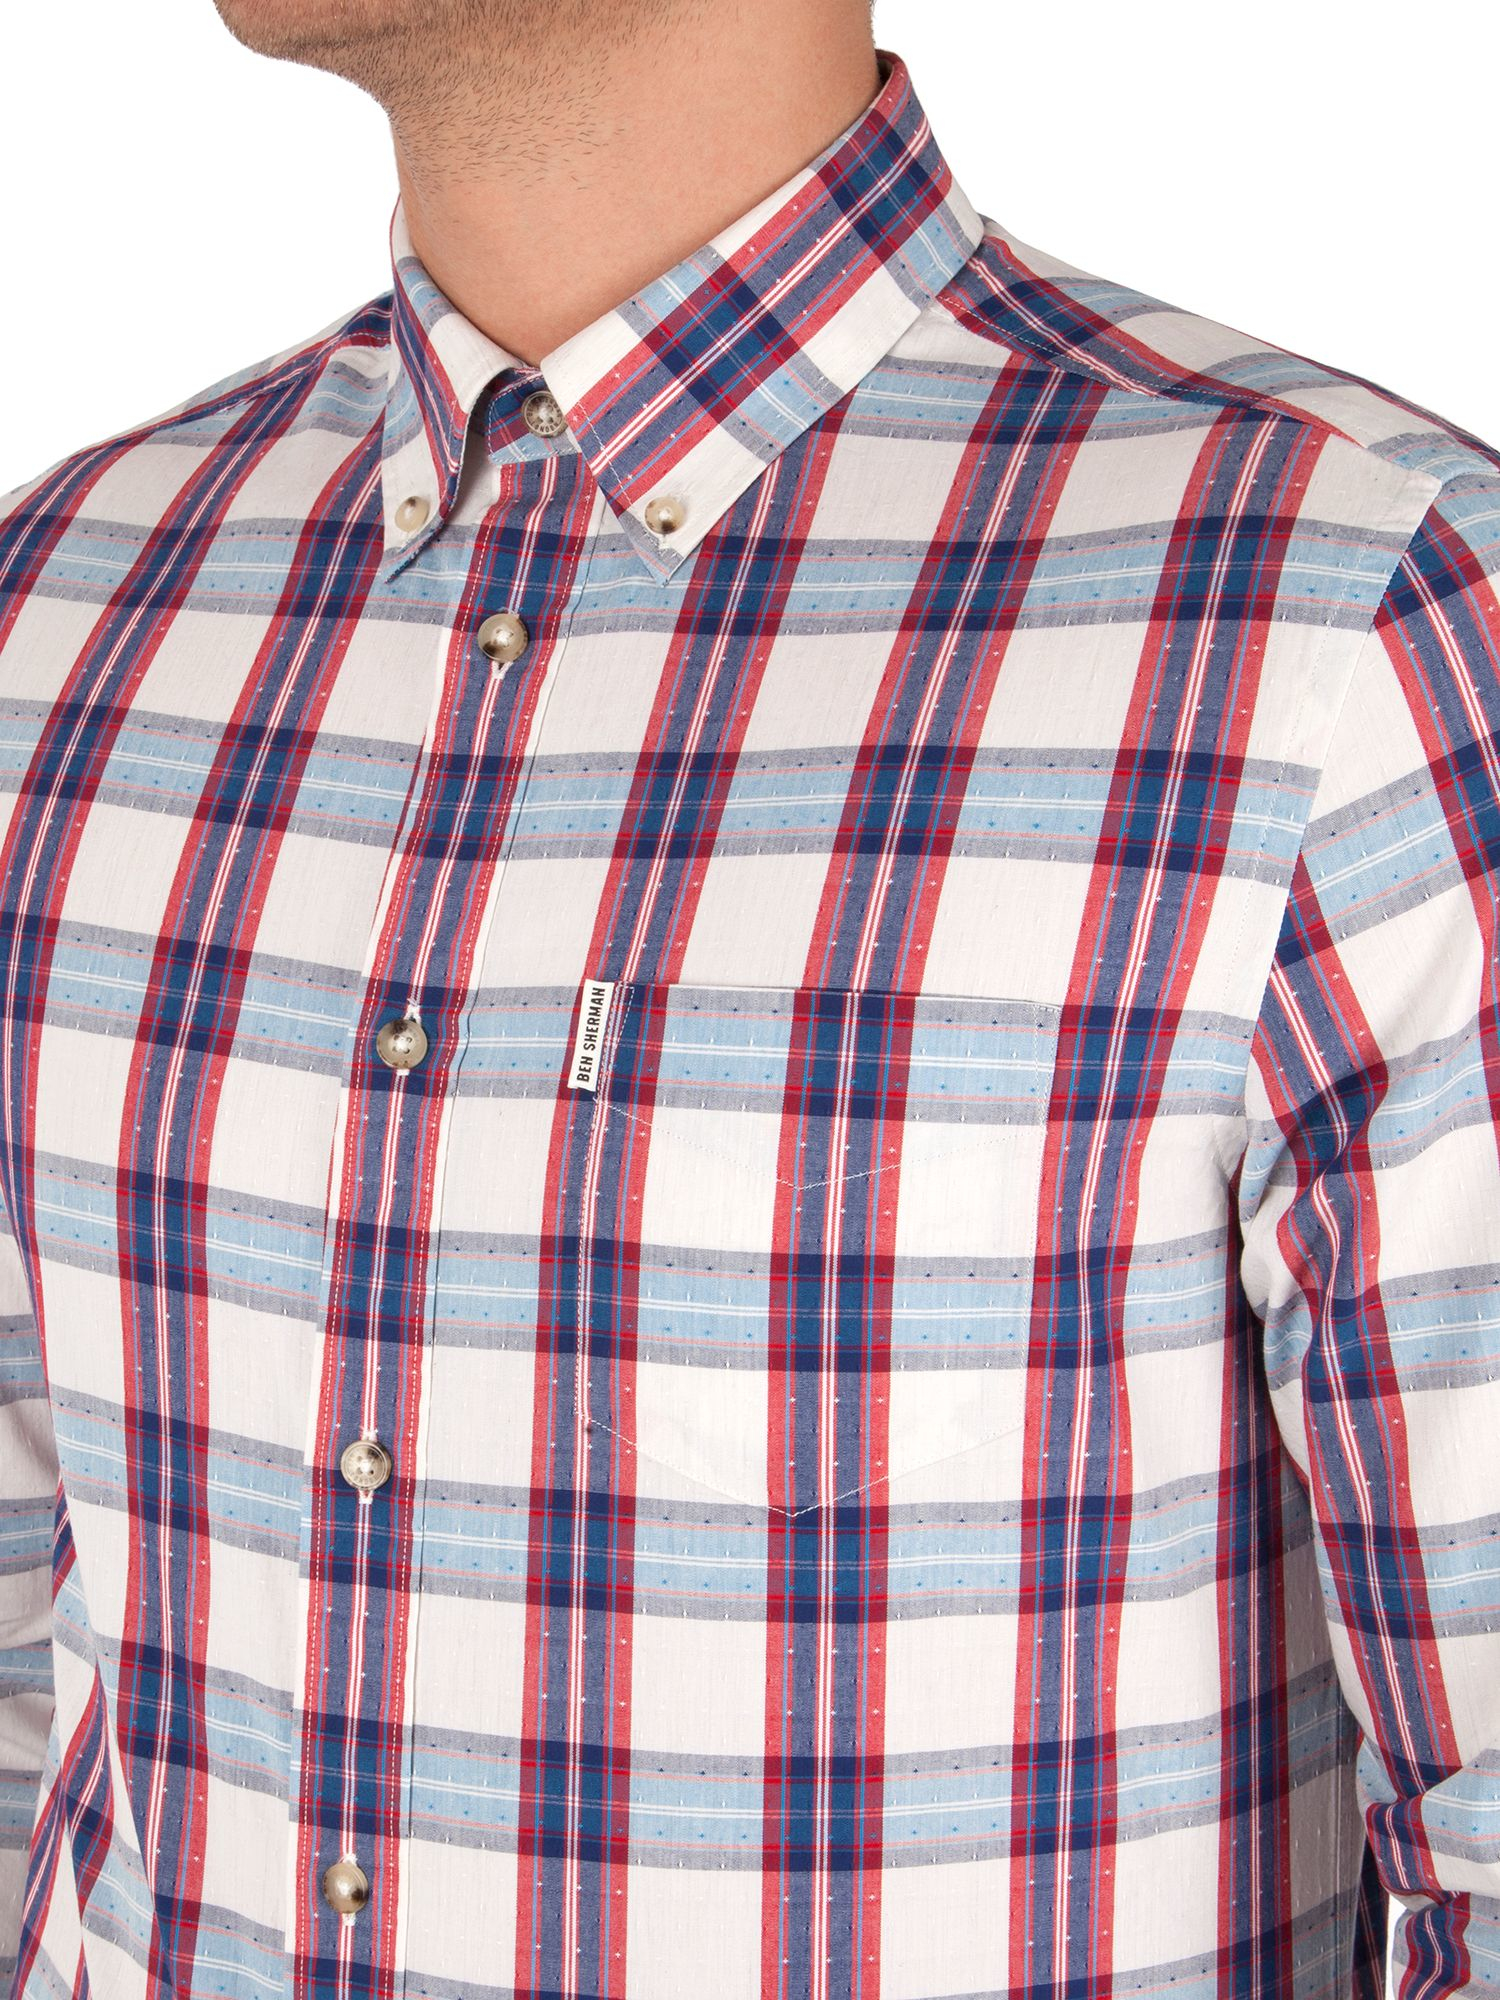 Ben Sherman Cotton Check With Dobby Shirt in Brown for Men